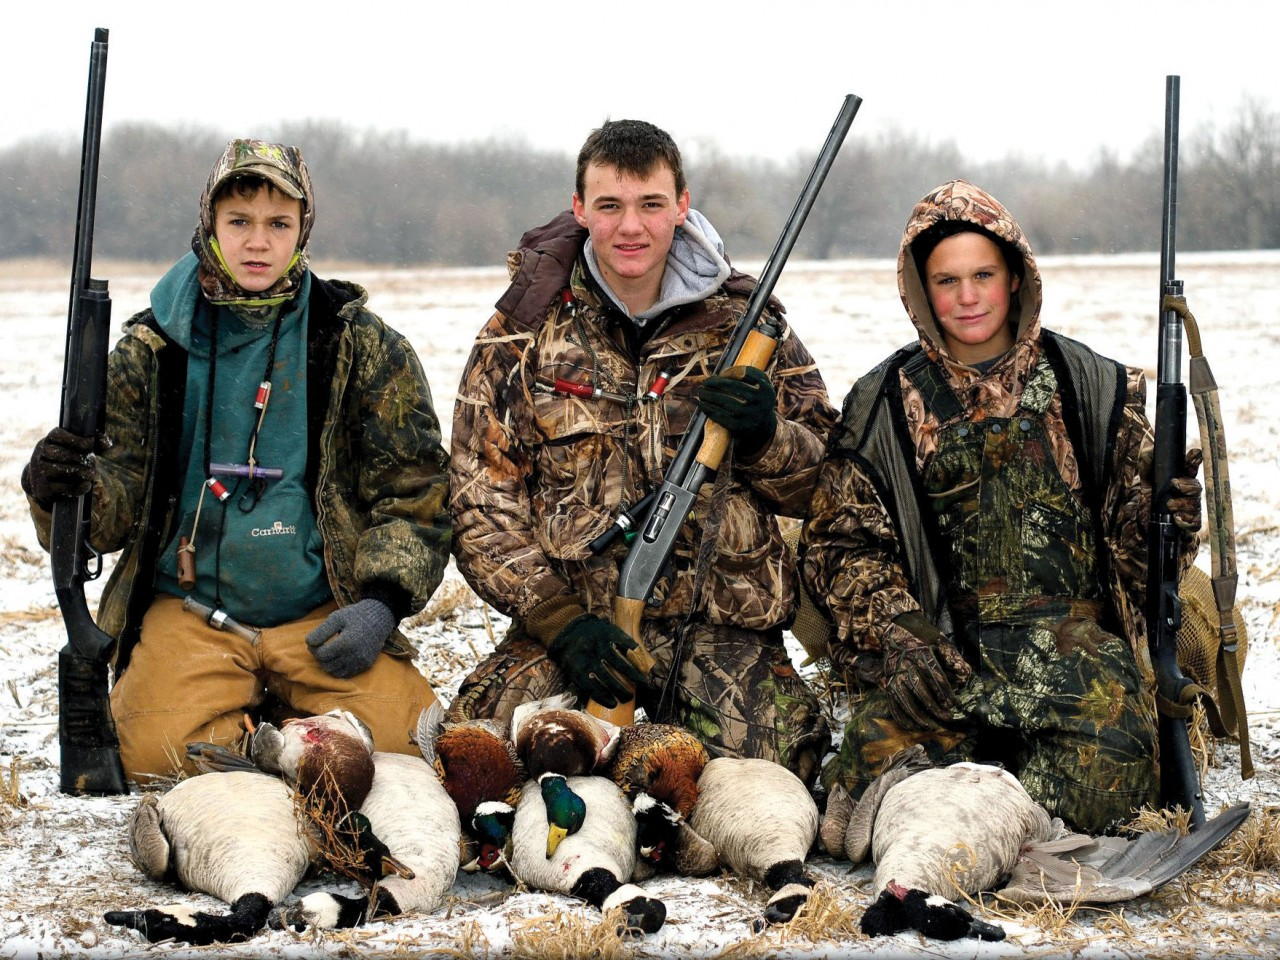 Spiritual results from hunting and horseback riding